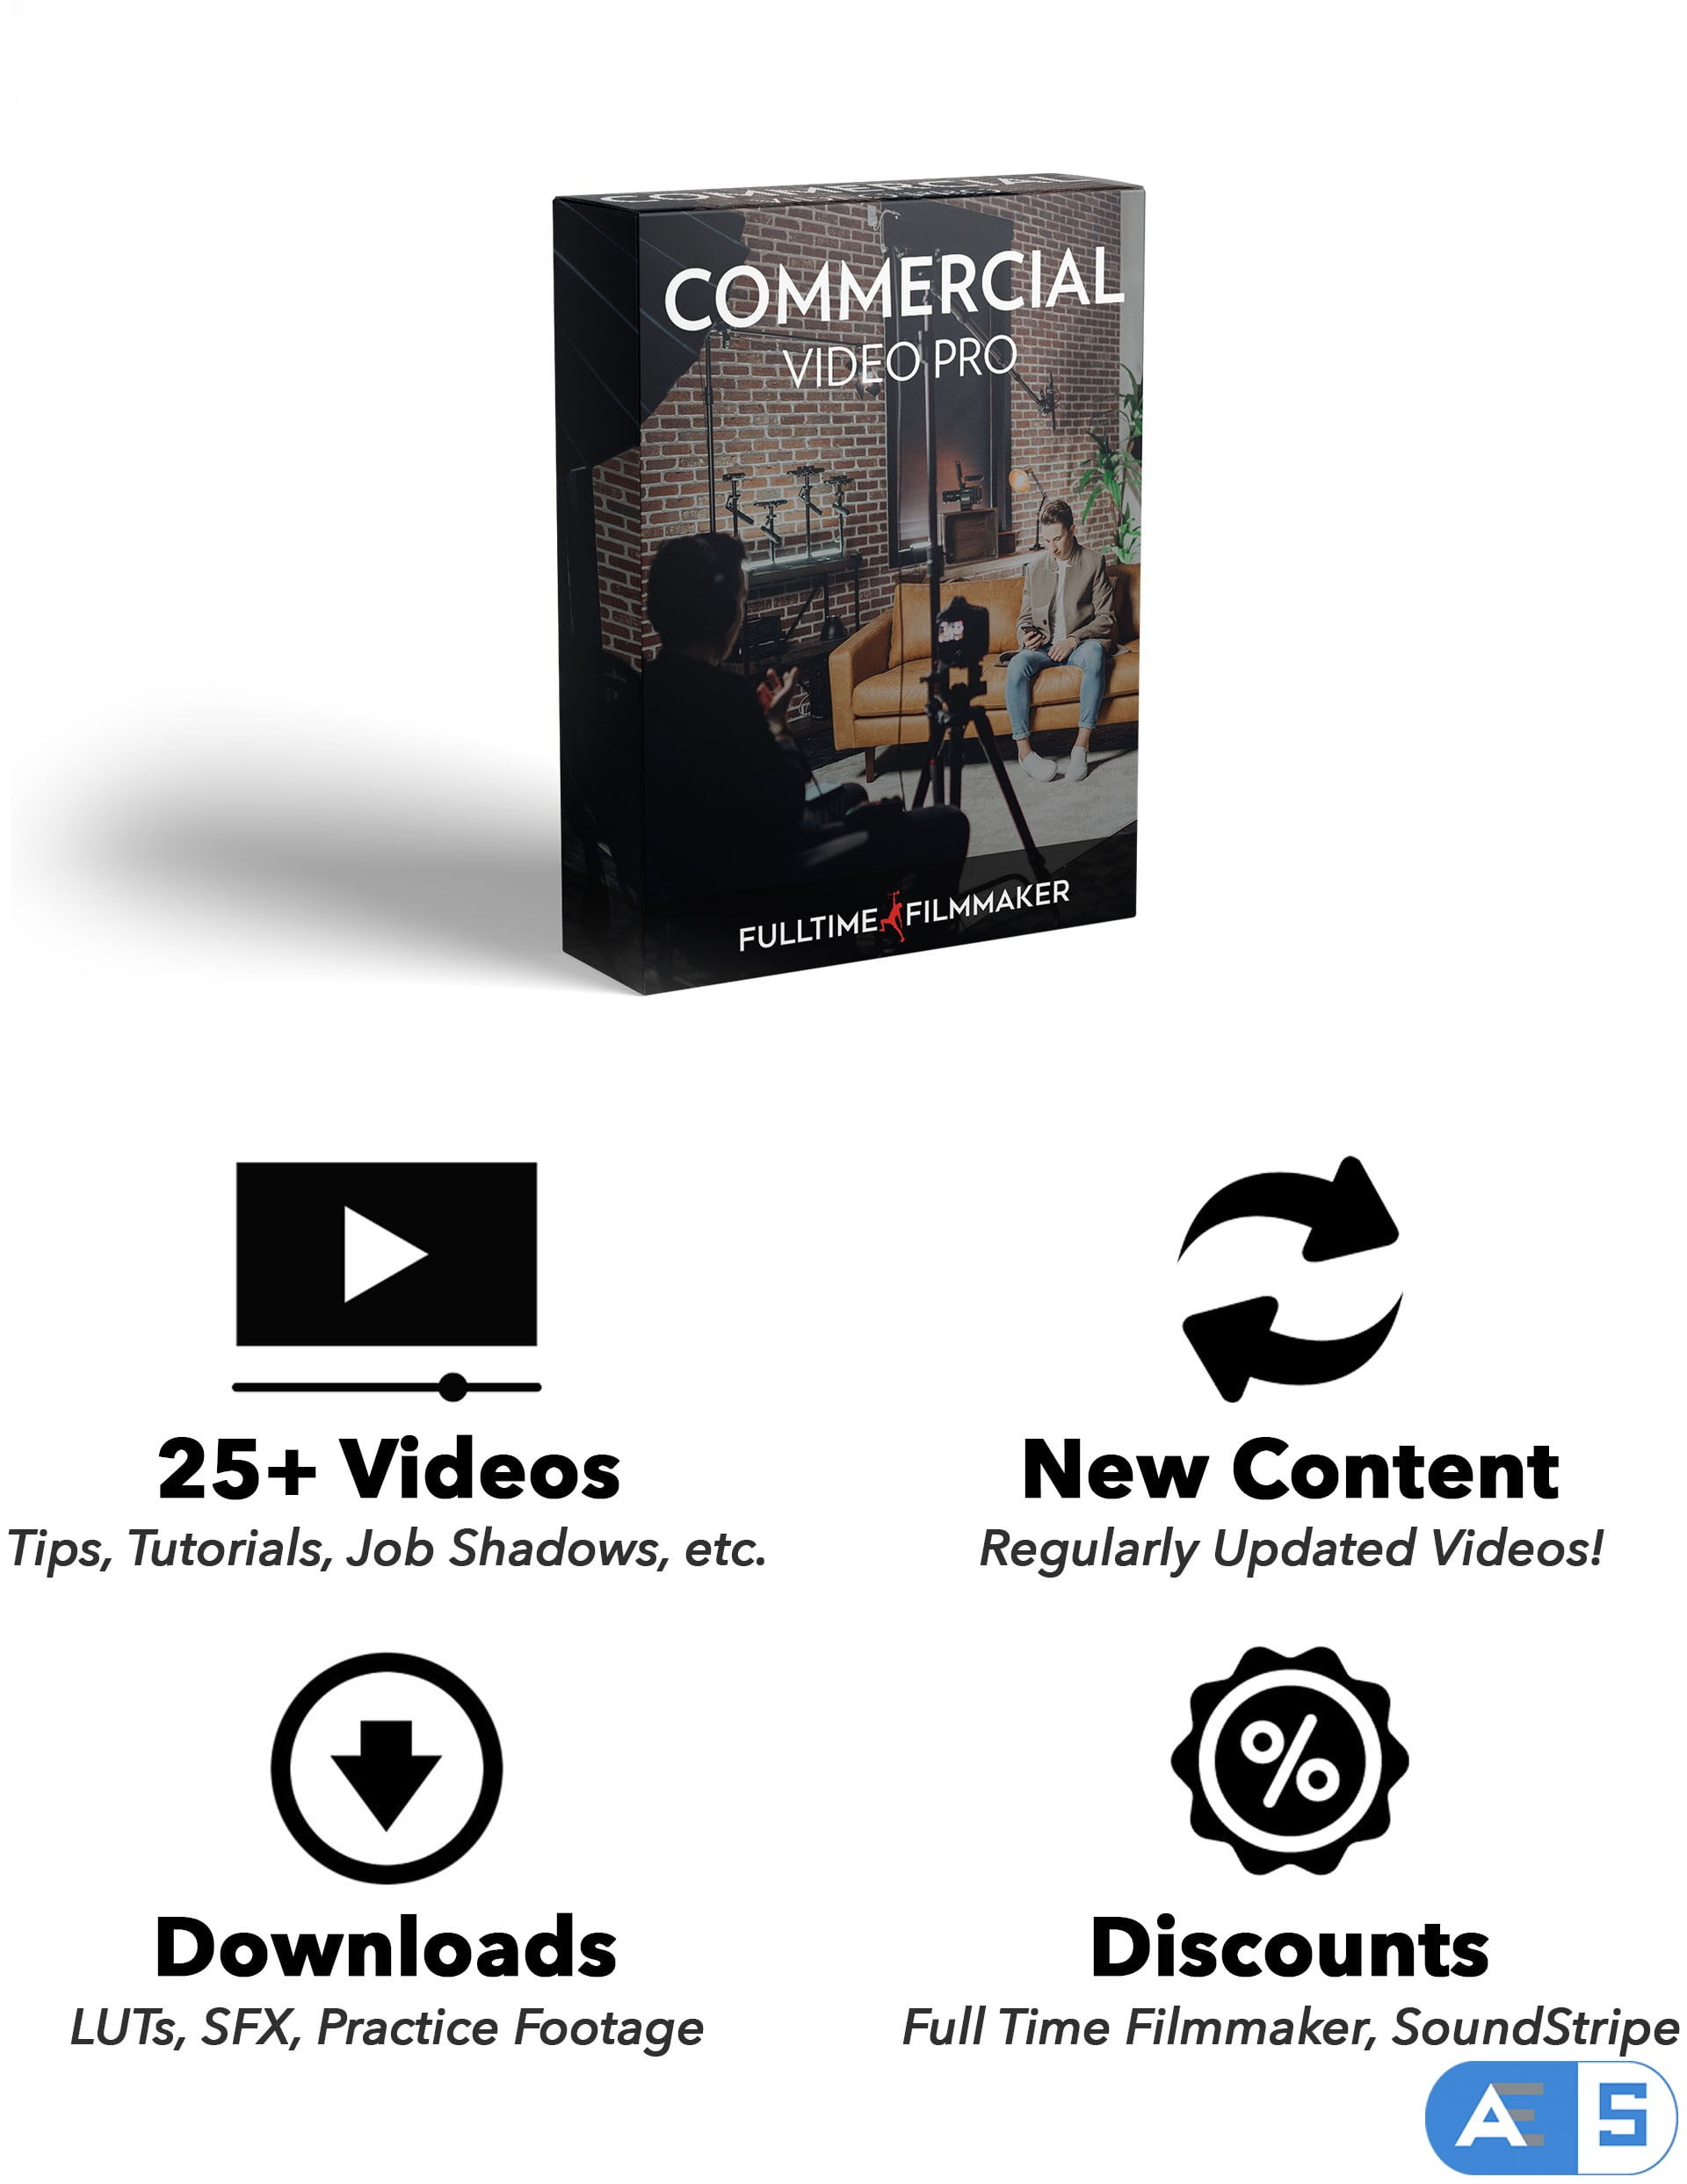 COMMERCIAL VIDEO PRO – FULLTIME FILMMAKER